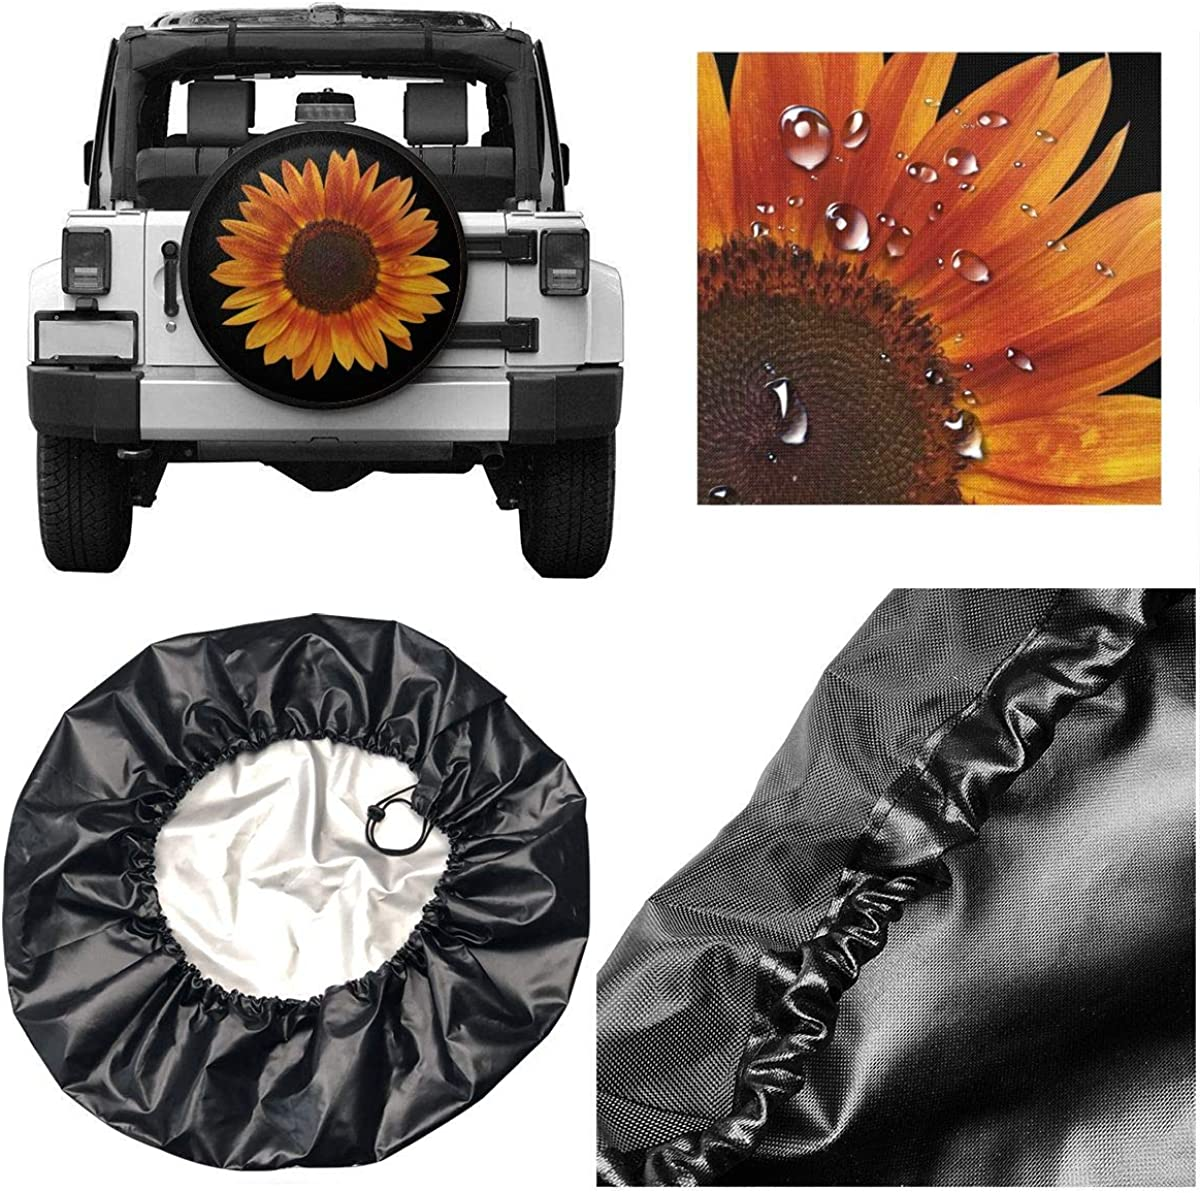 14, 15, 16, 17 inch INYANIDI Spare Tire Cover Sunflower Universal Sunscreen dust-Proof Corrosion Protection Wheel Covers for Jeep RV SUV